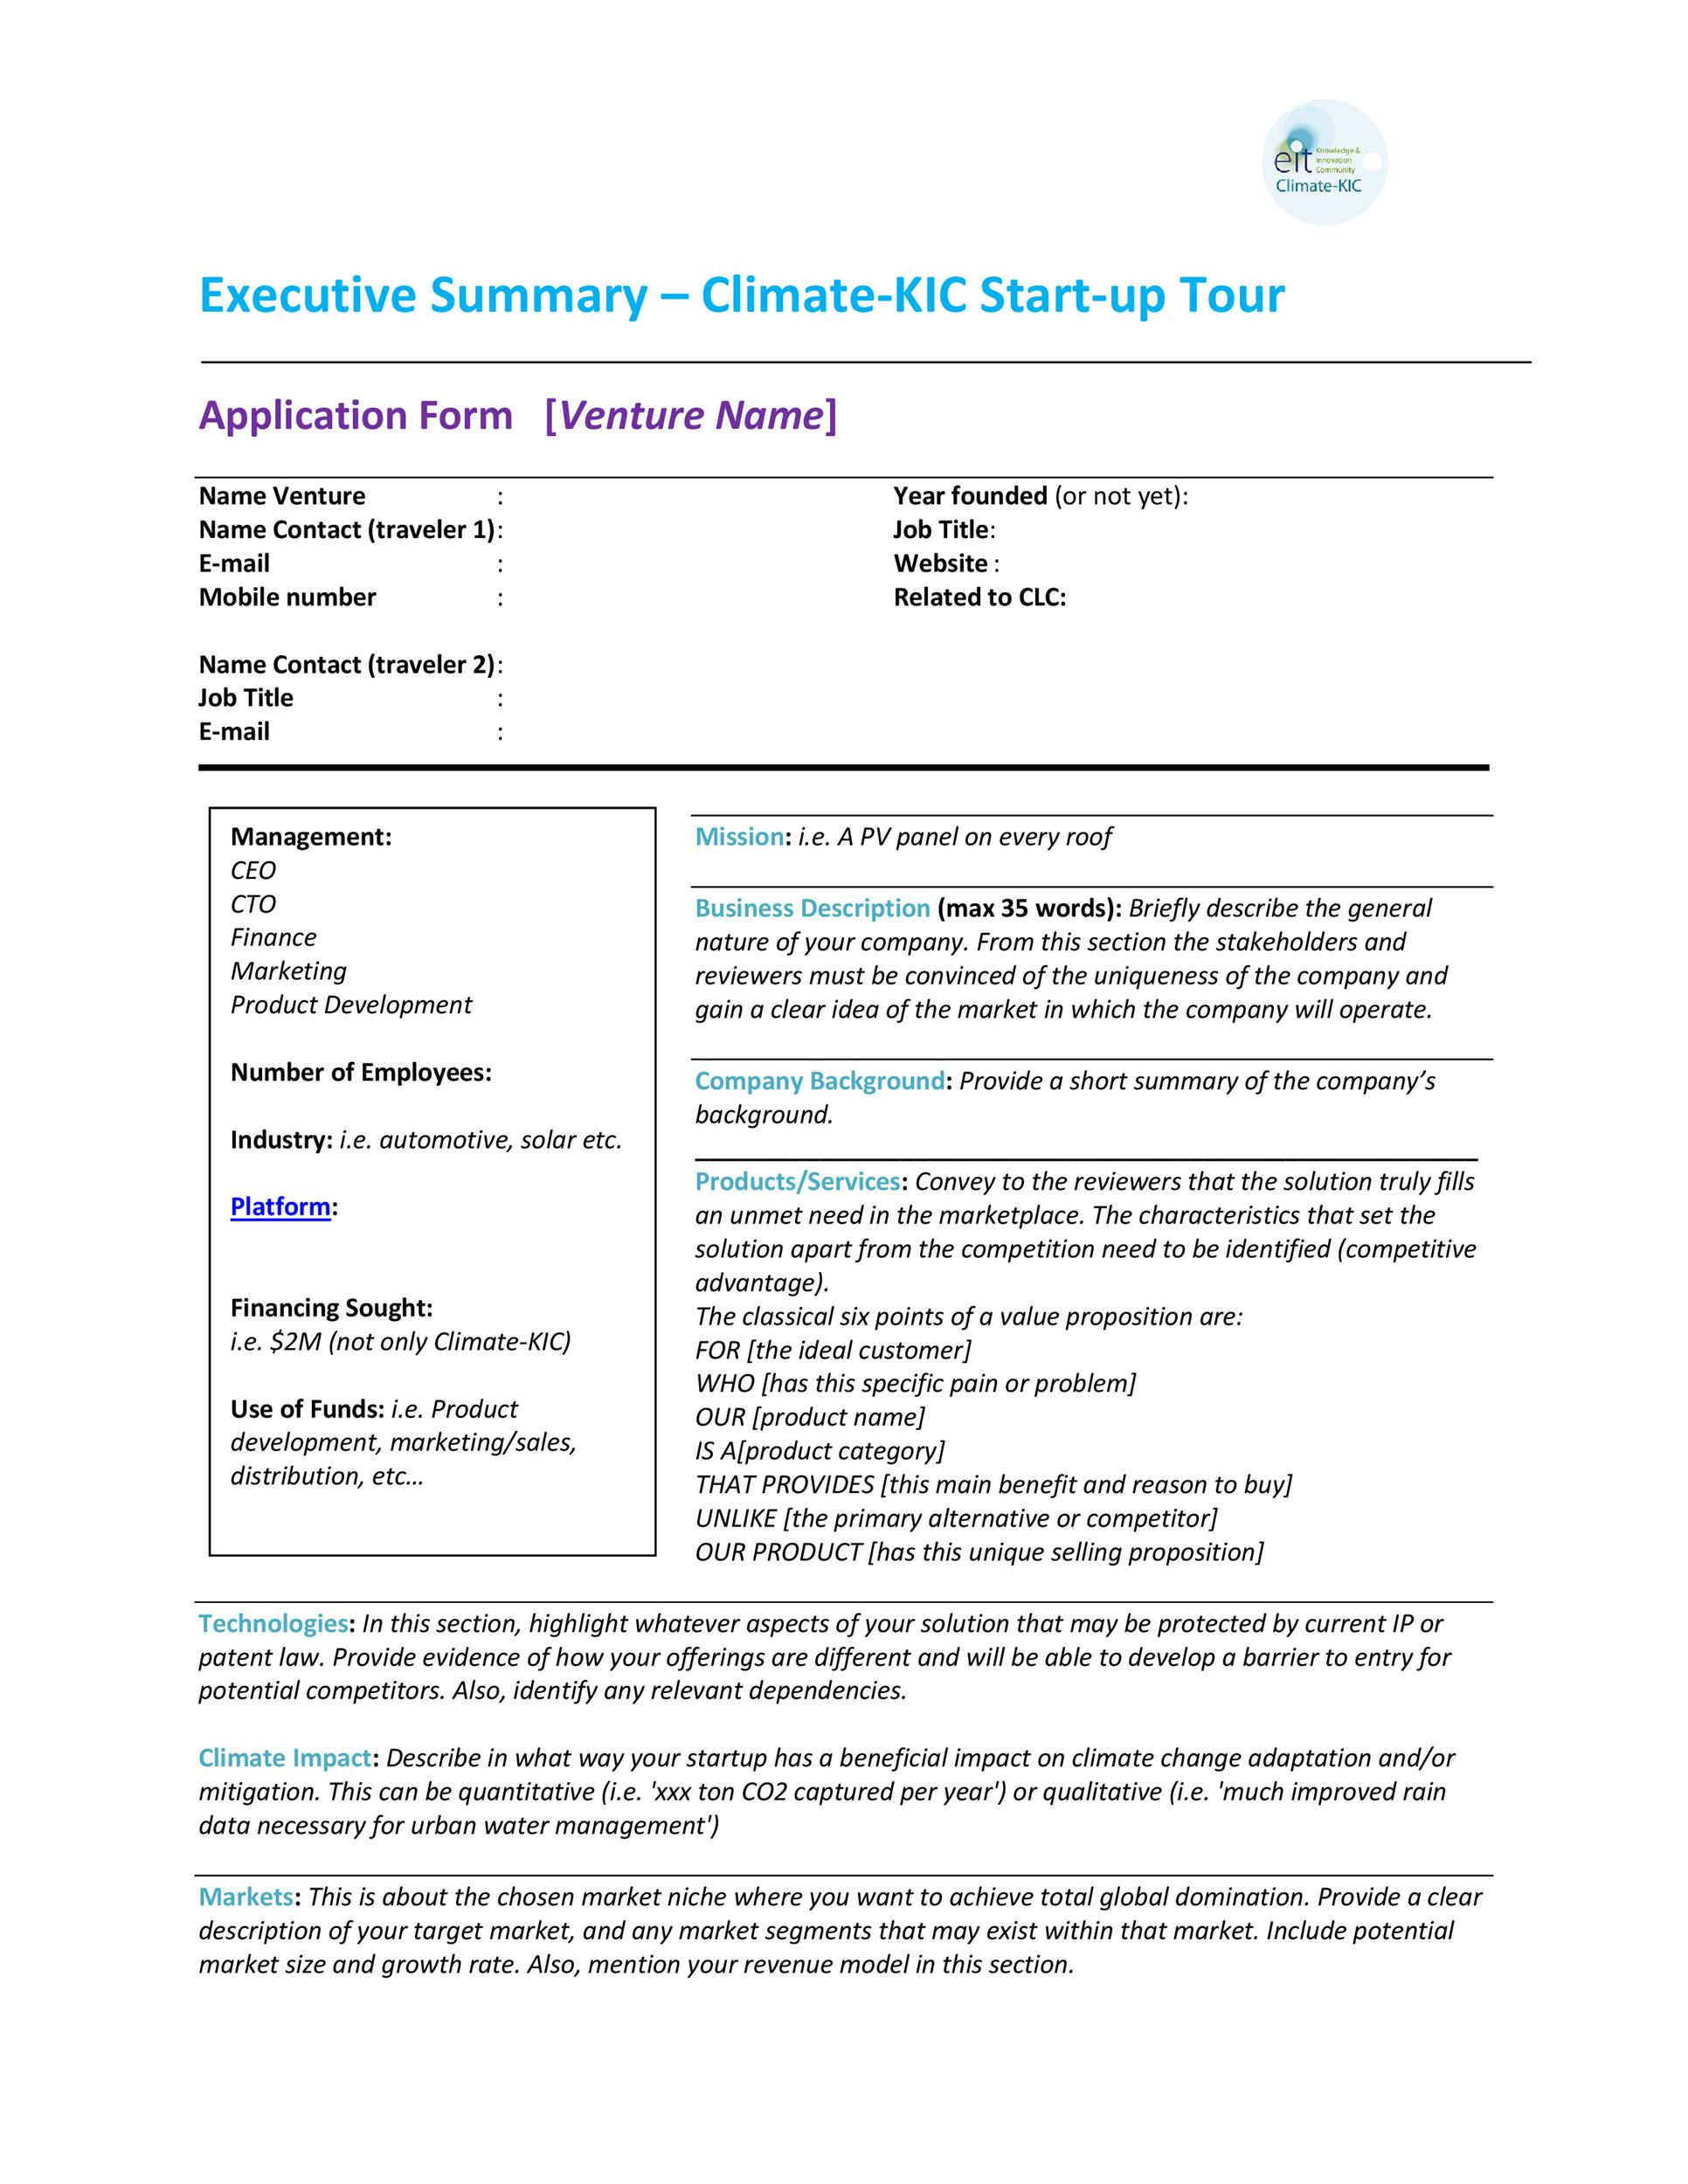 30+ Perfect Executive Summary Examples & Templates ᐅ TemplateLab